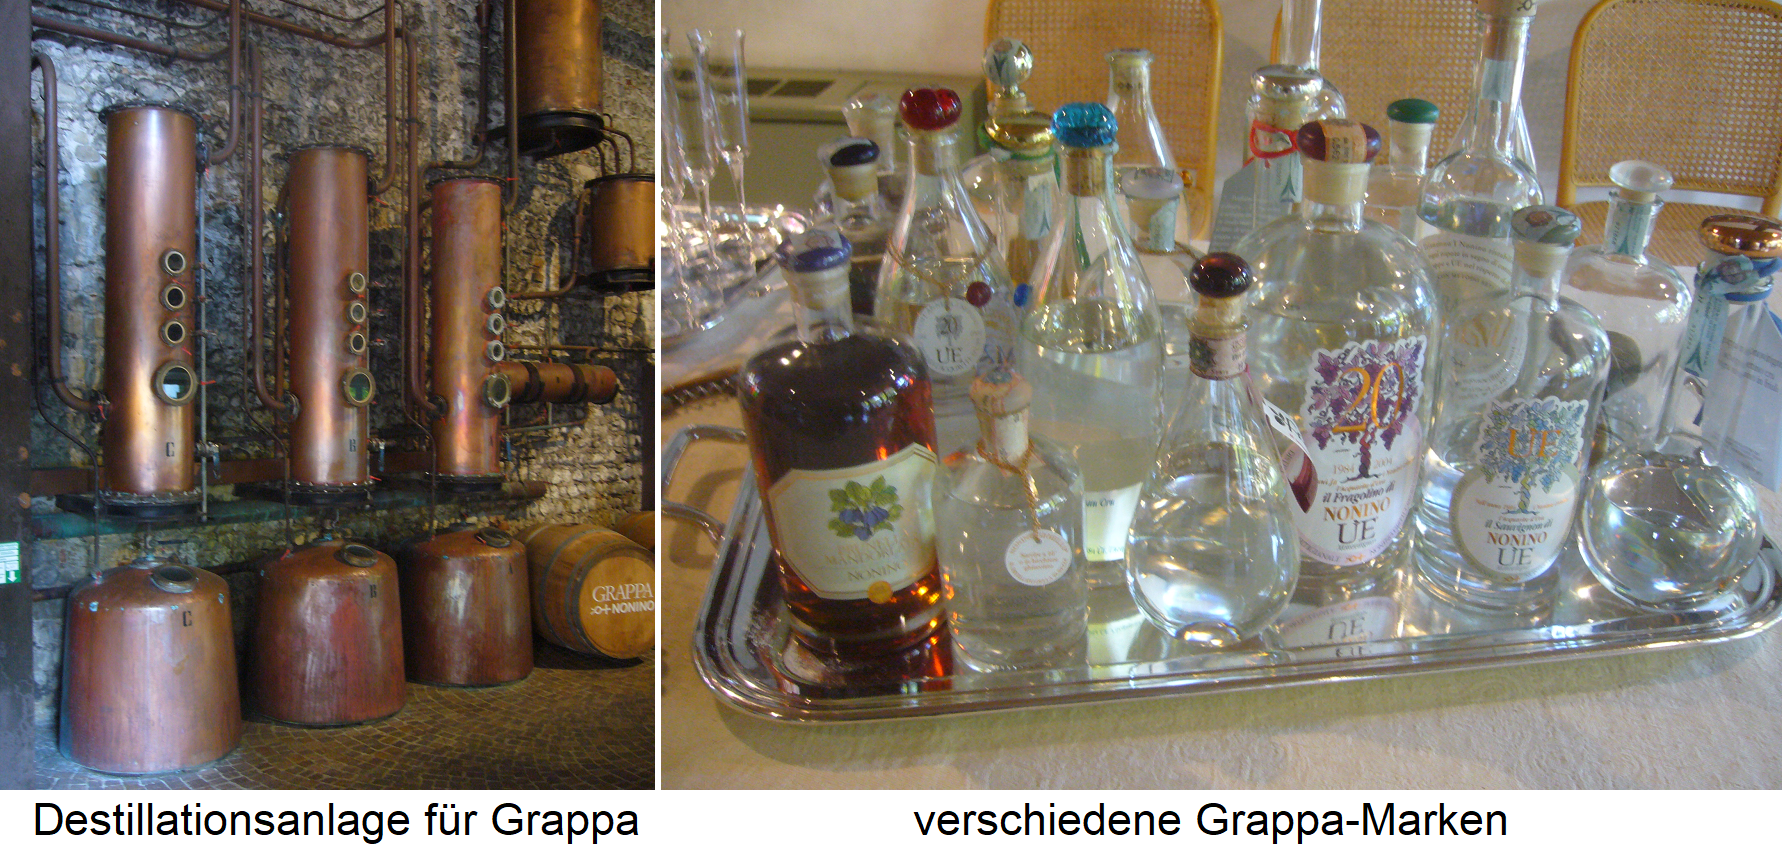 Grappa distillation plant and grappa brands